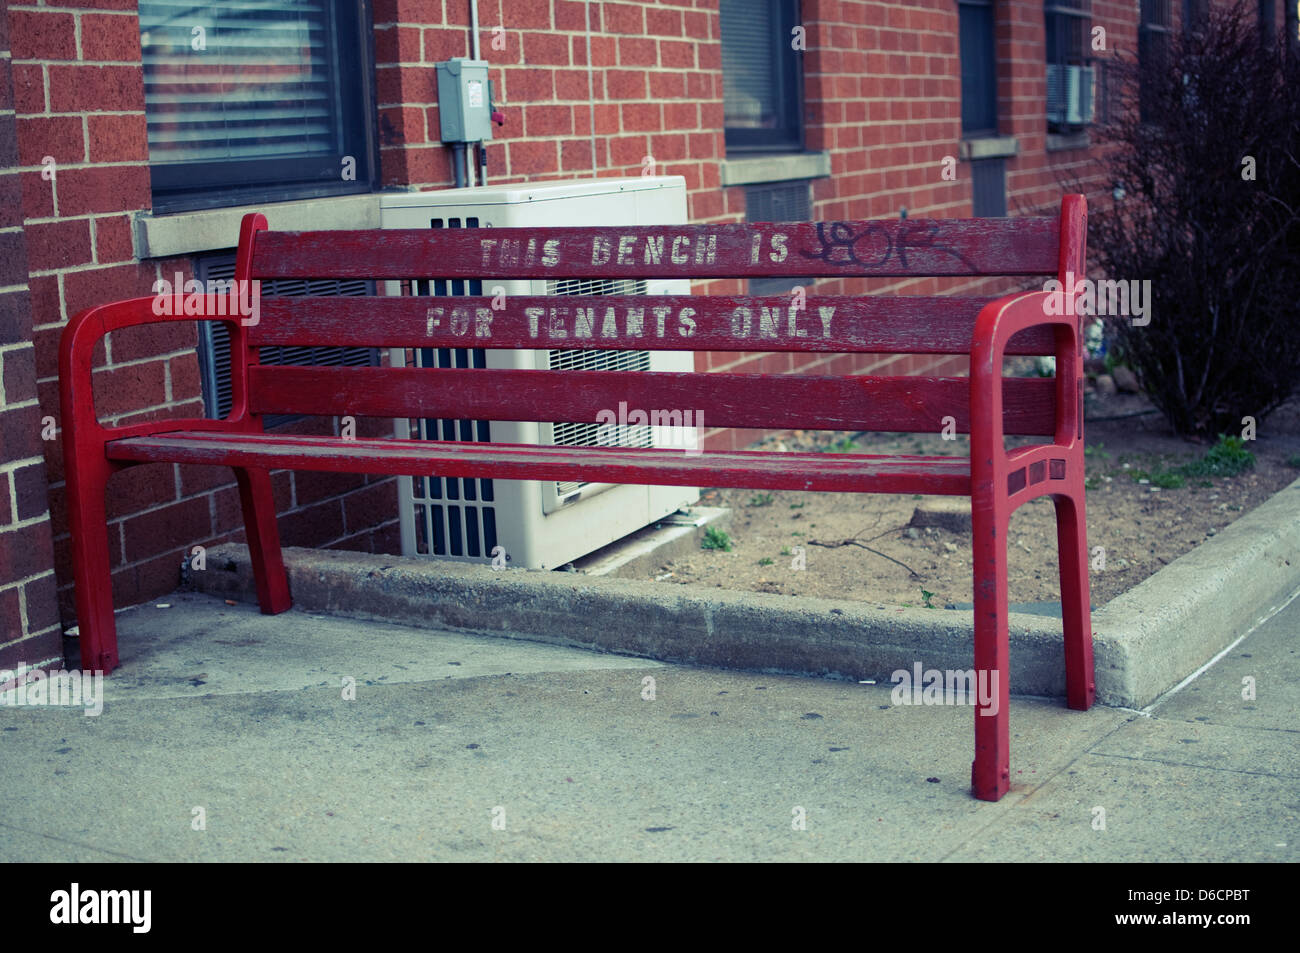 Tenants only bench - Stock Image